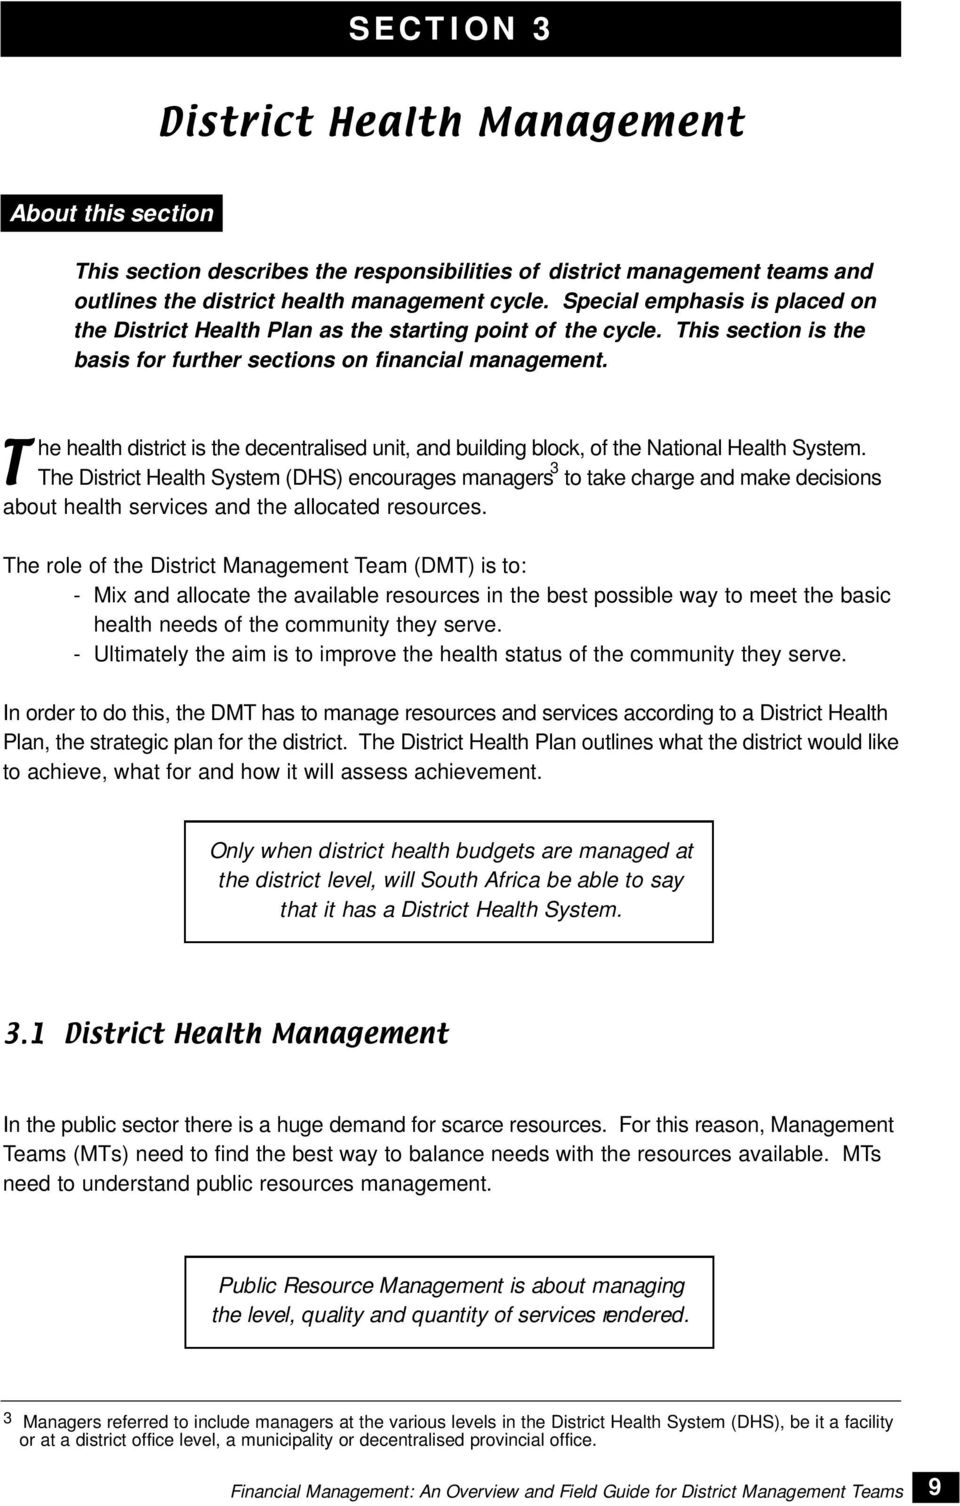 financial management an overview and field guide for district rh docplayer net Financial Management System Business Management